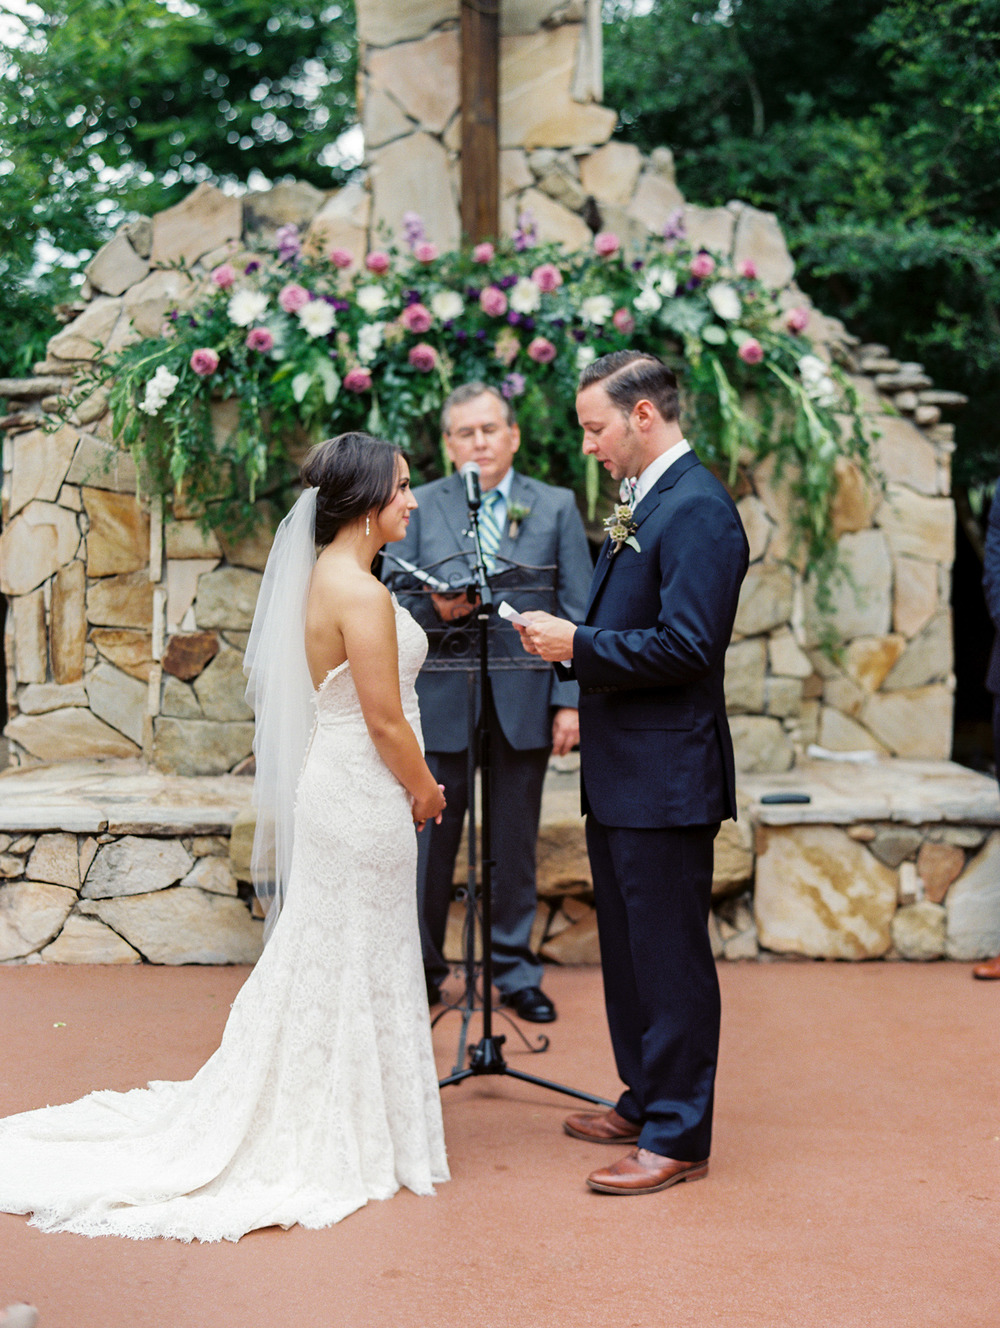 Dana Fernandez Photography Agave Road Agave Estates Houston Texas Wedding Photographer Destination Southwest Film-10.jpg